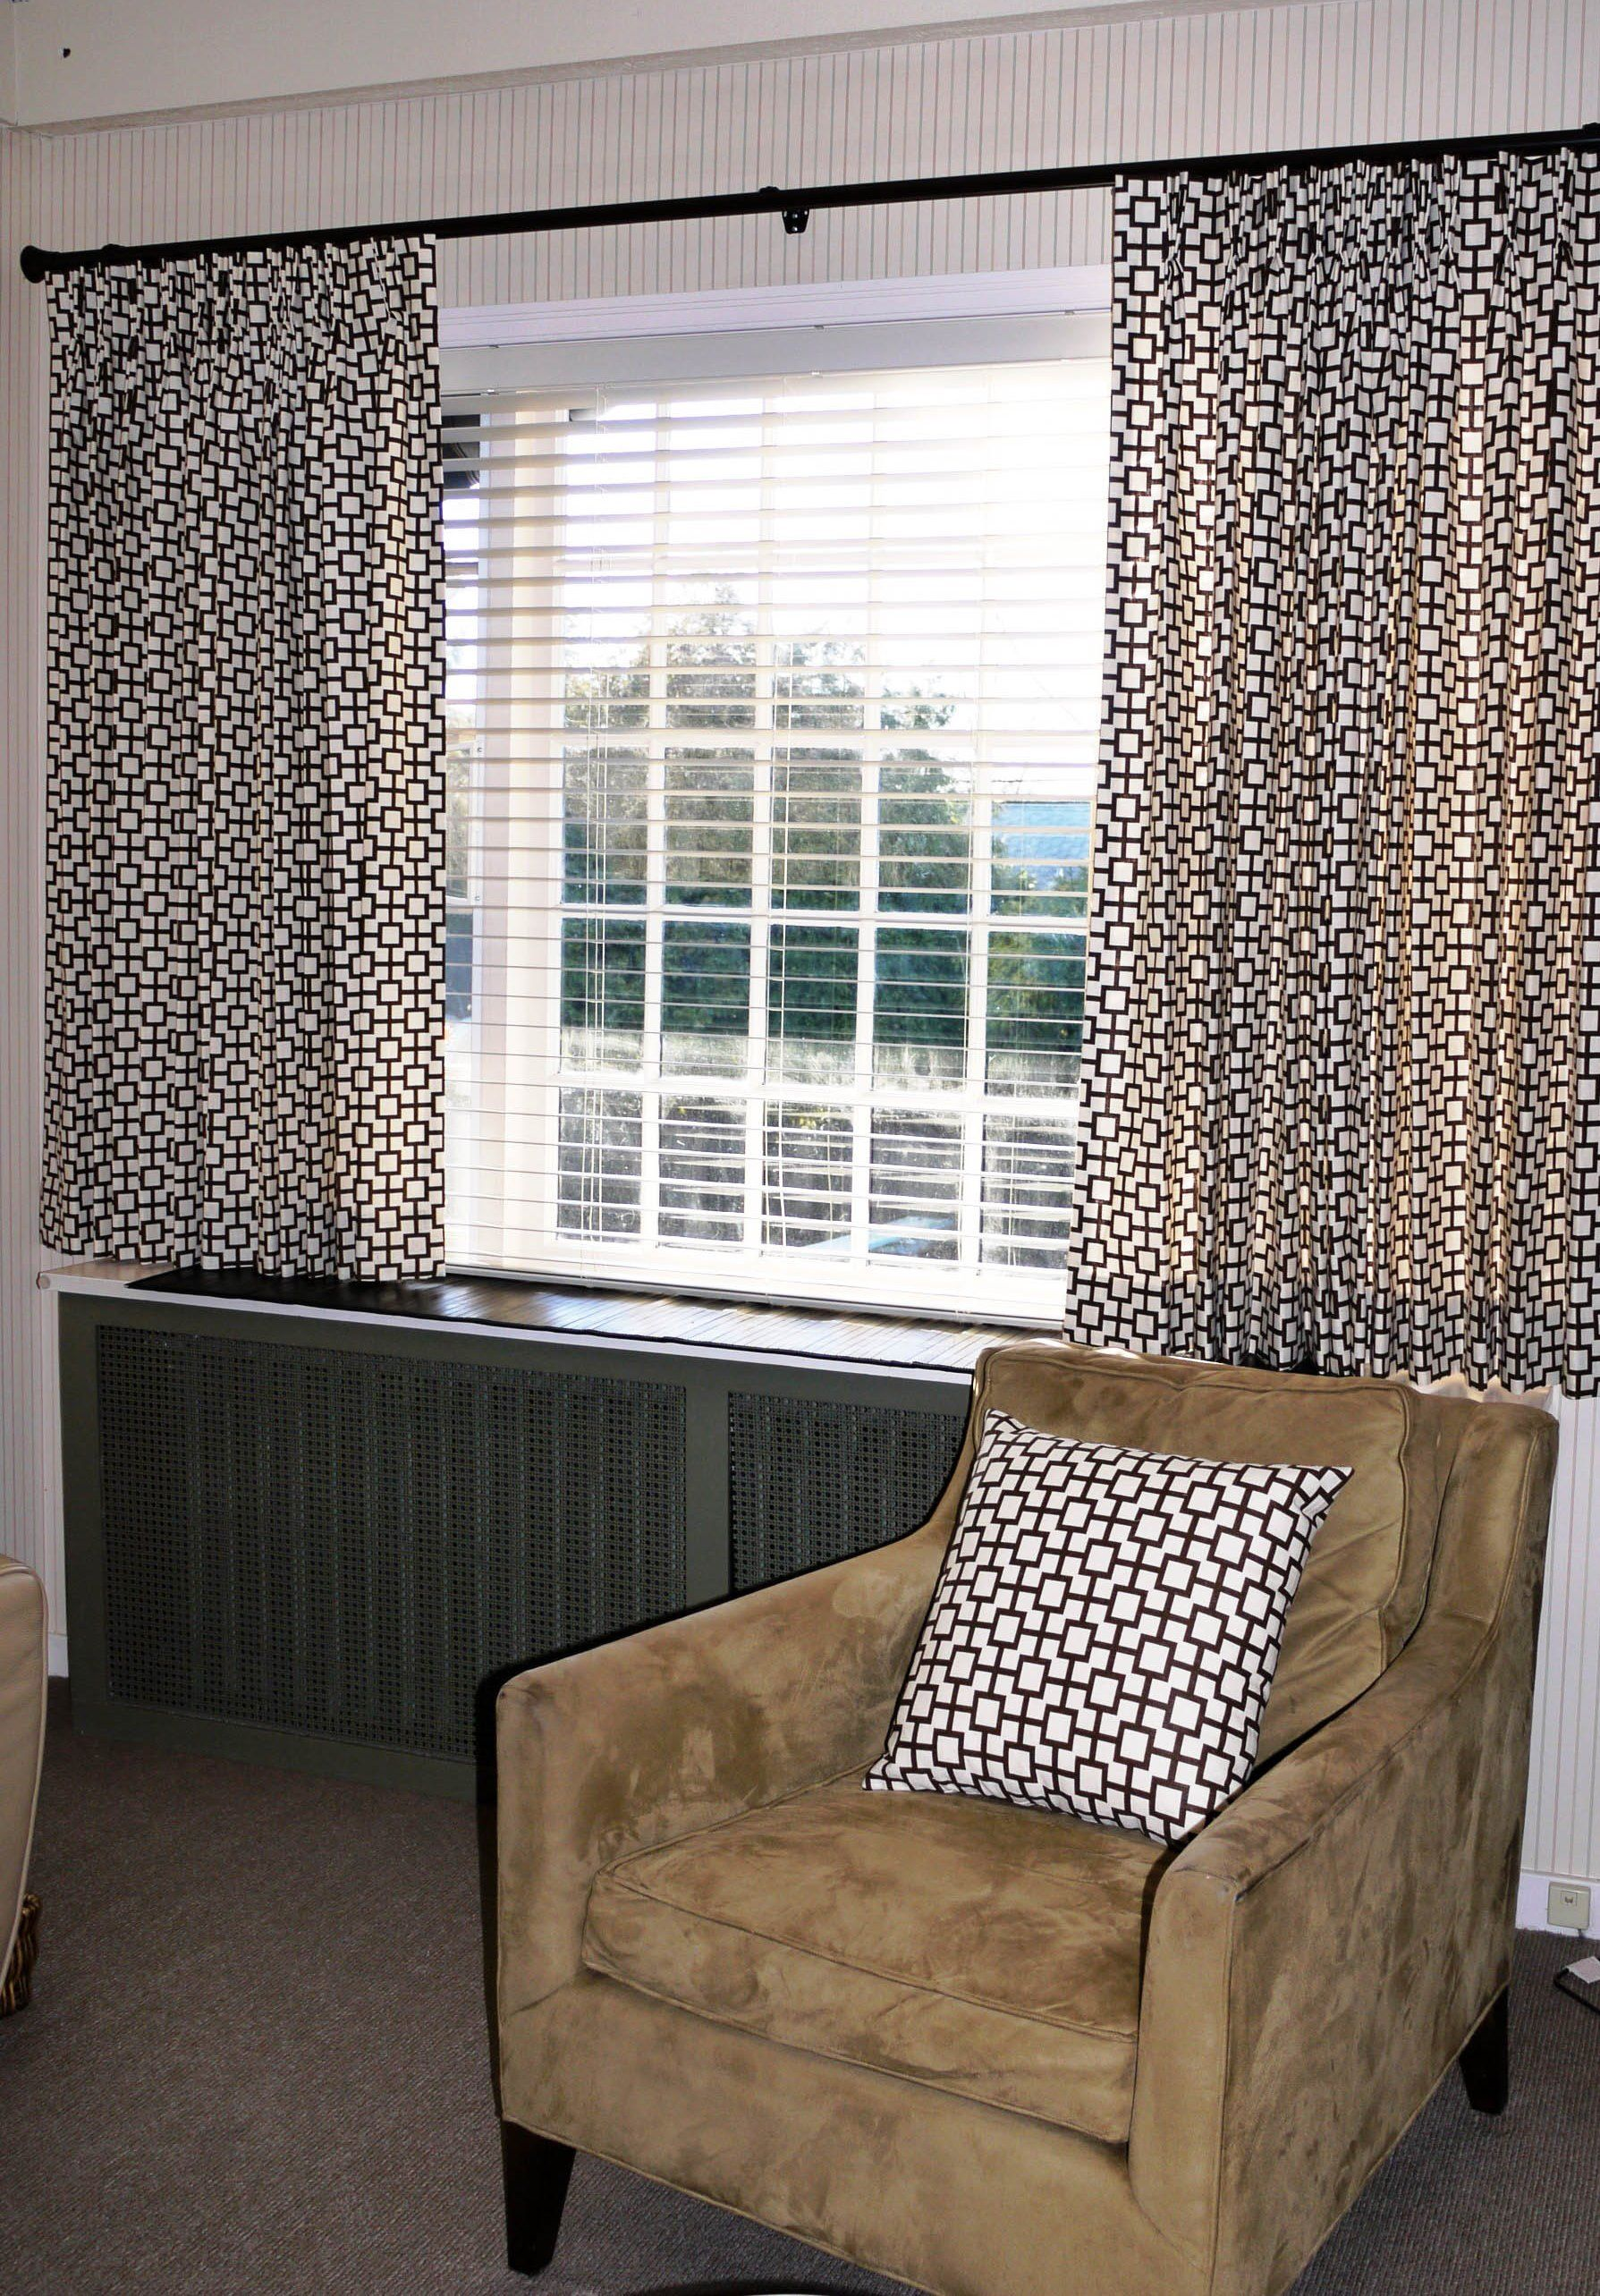 curtain custom well curtains window shutters drapes the draperies blinds and dressed